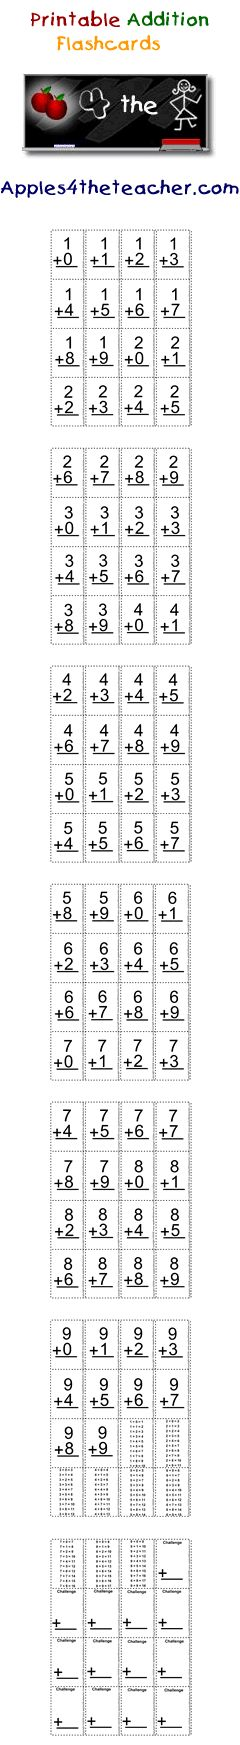 Learn your addition tables with these mini addition flash cards. Addition flashcards reinforce addition tables from 1 to 9.